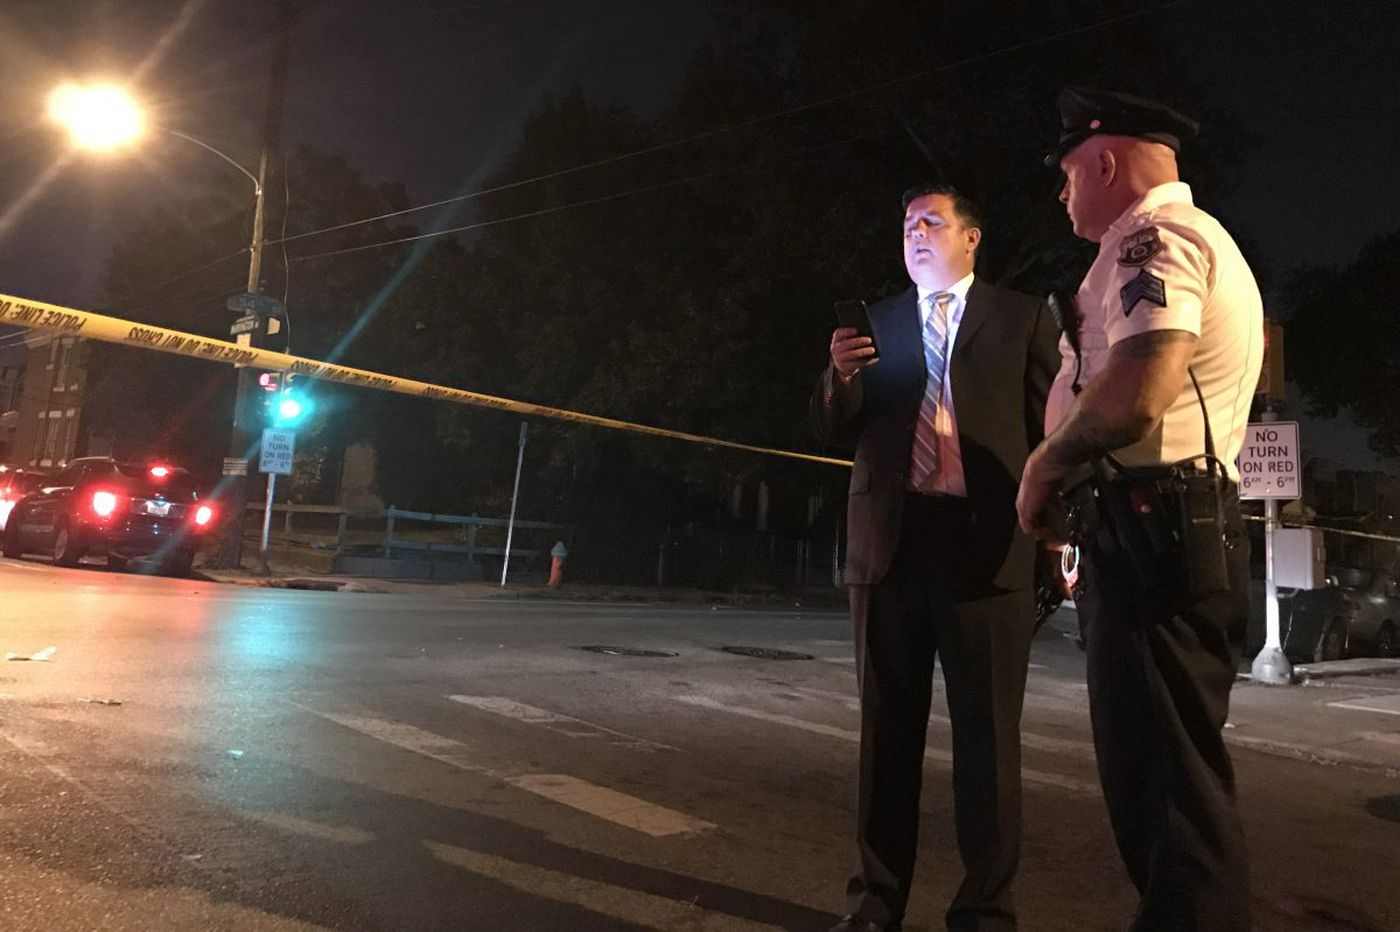 A midnight shooting. A paralyzed victim. Philly cops go to work